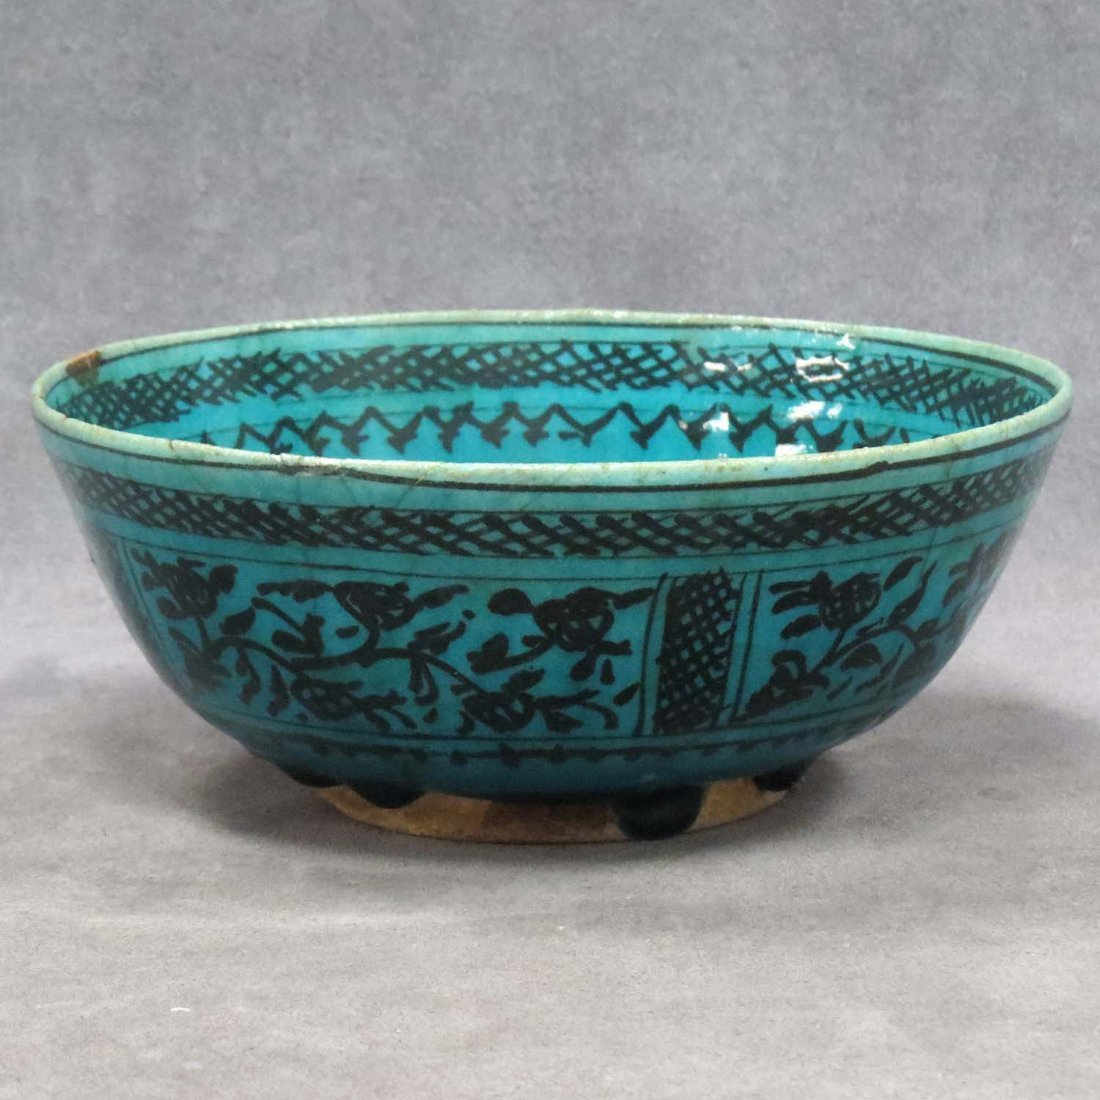 ISLAMIC DECORATED POTTERY BOWL, SULTANABAD